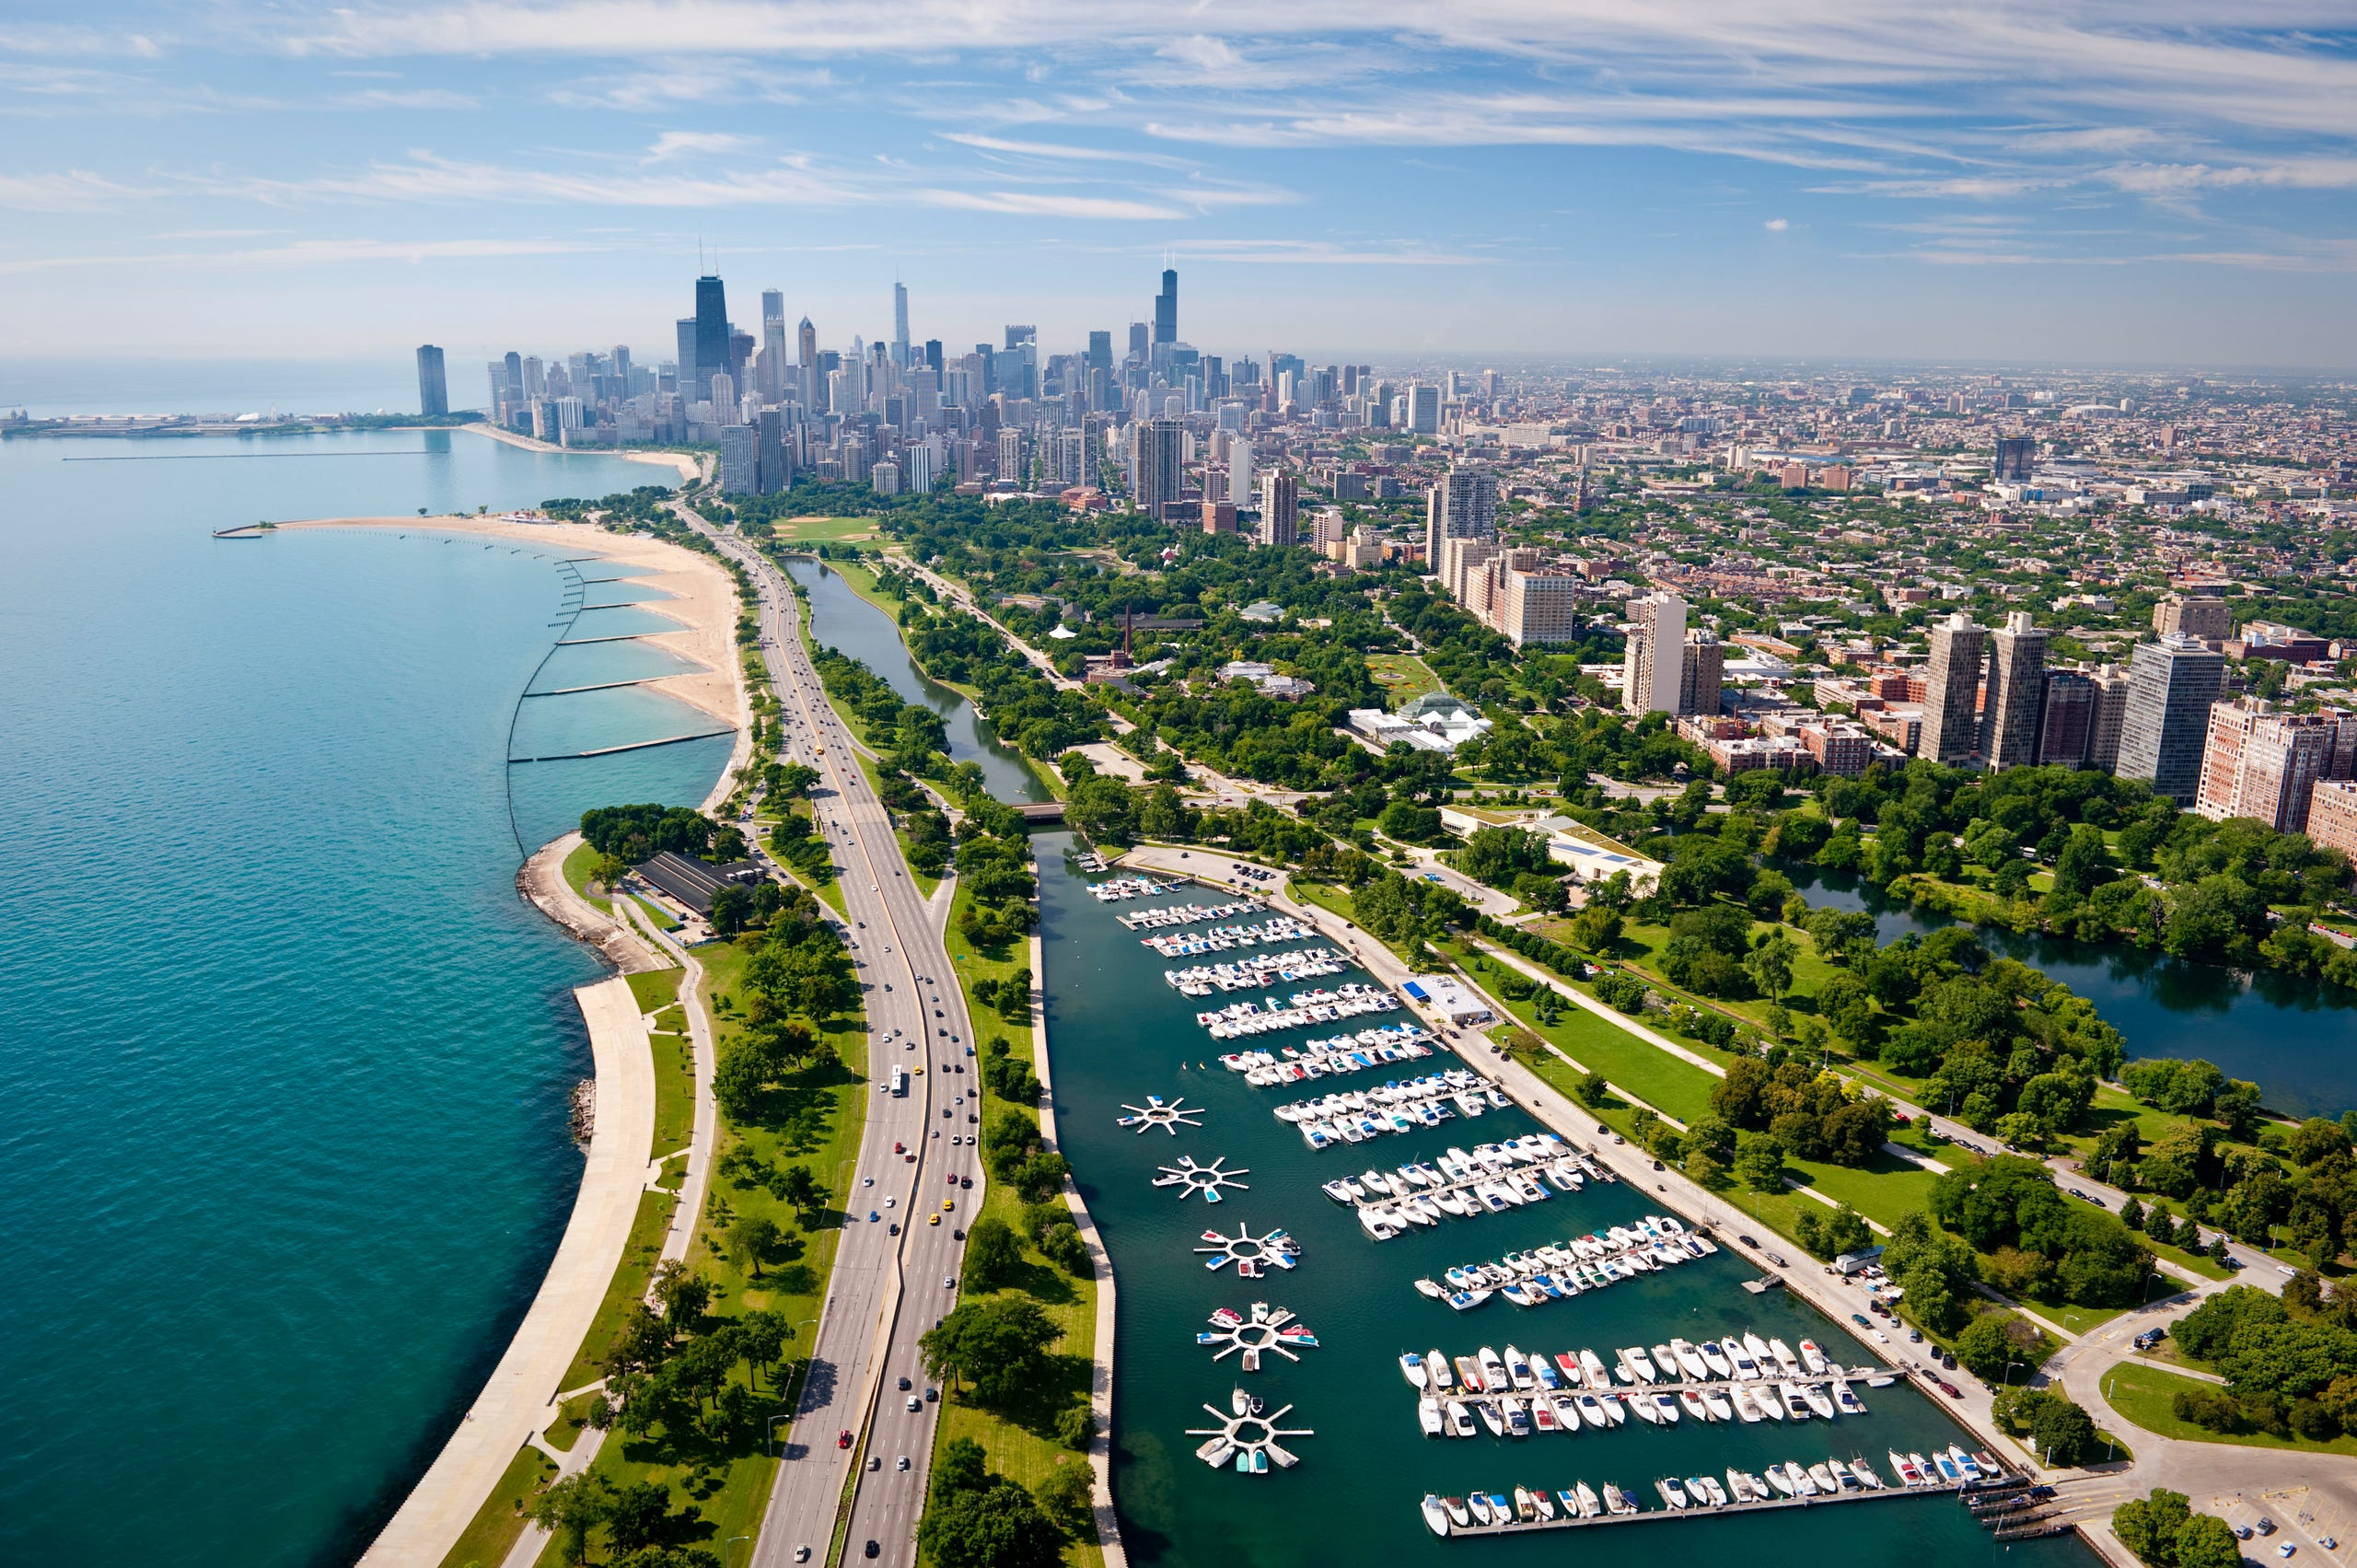 Best big city in the USA: Chicago